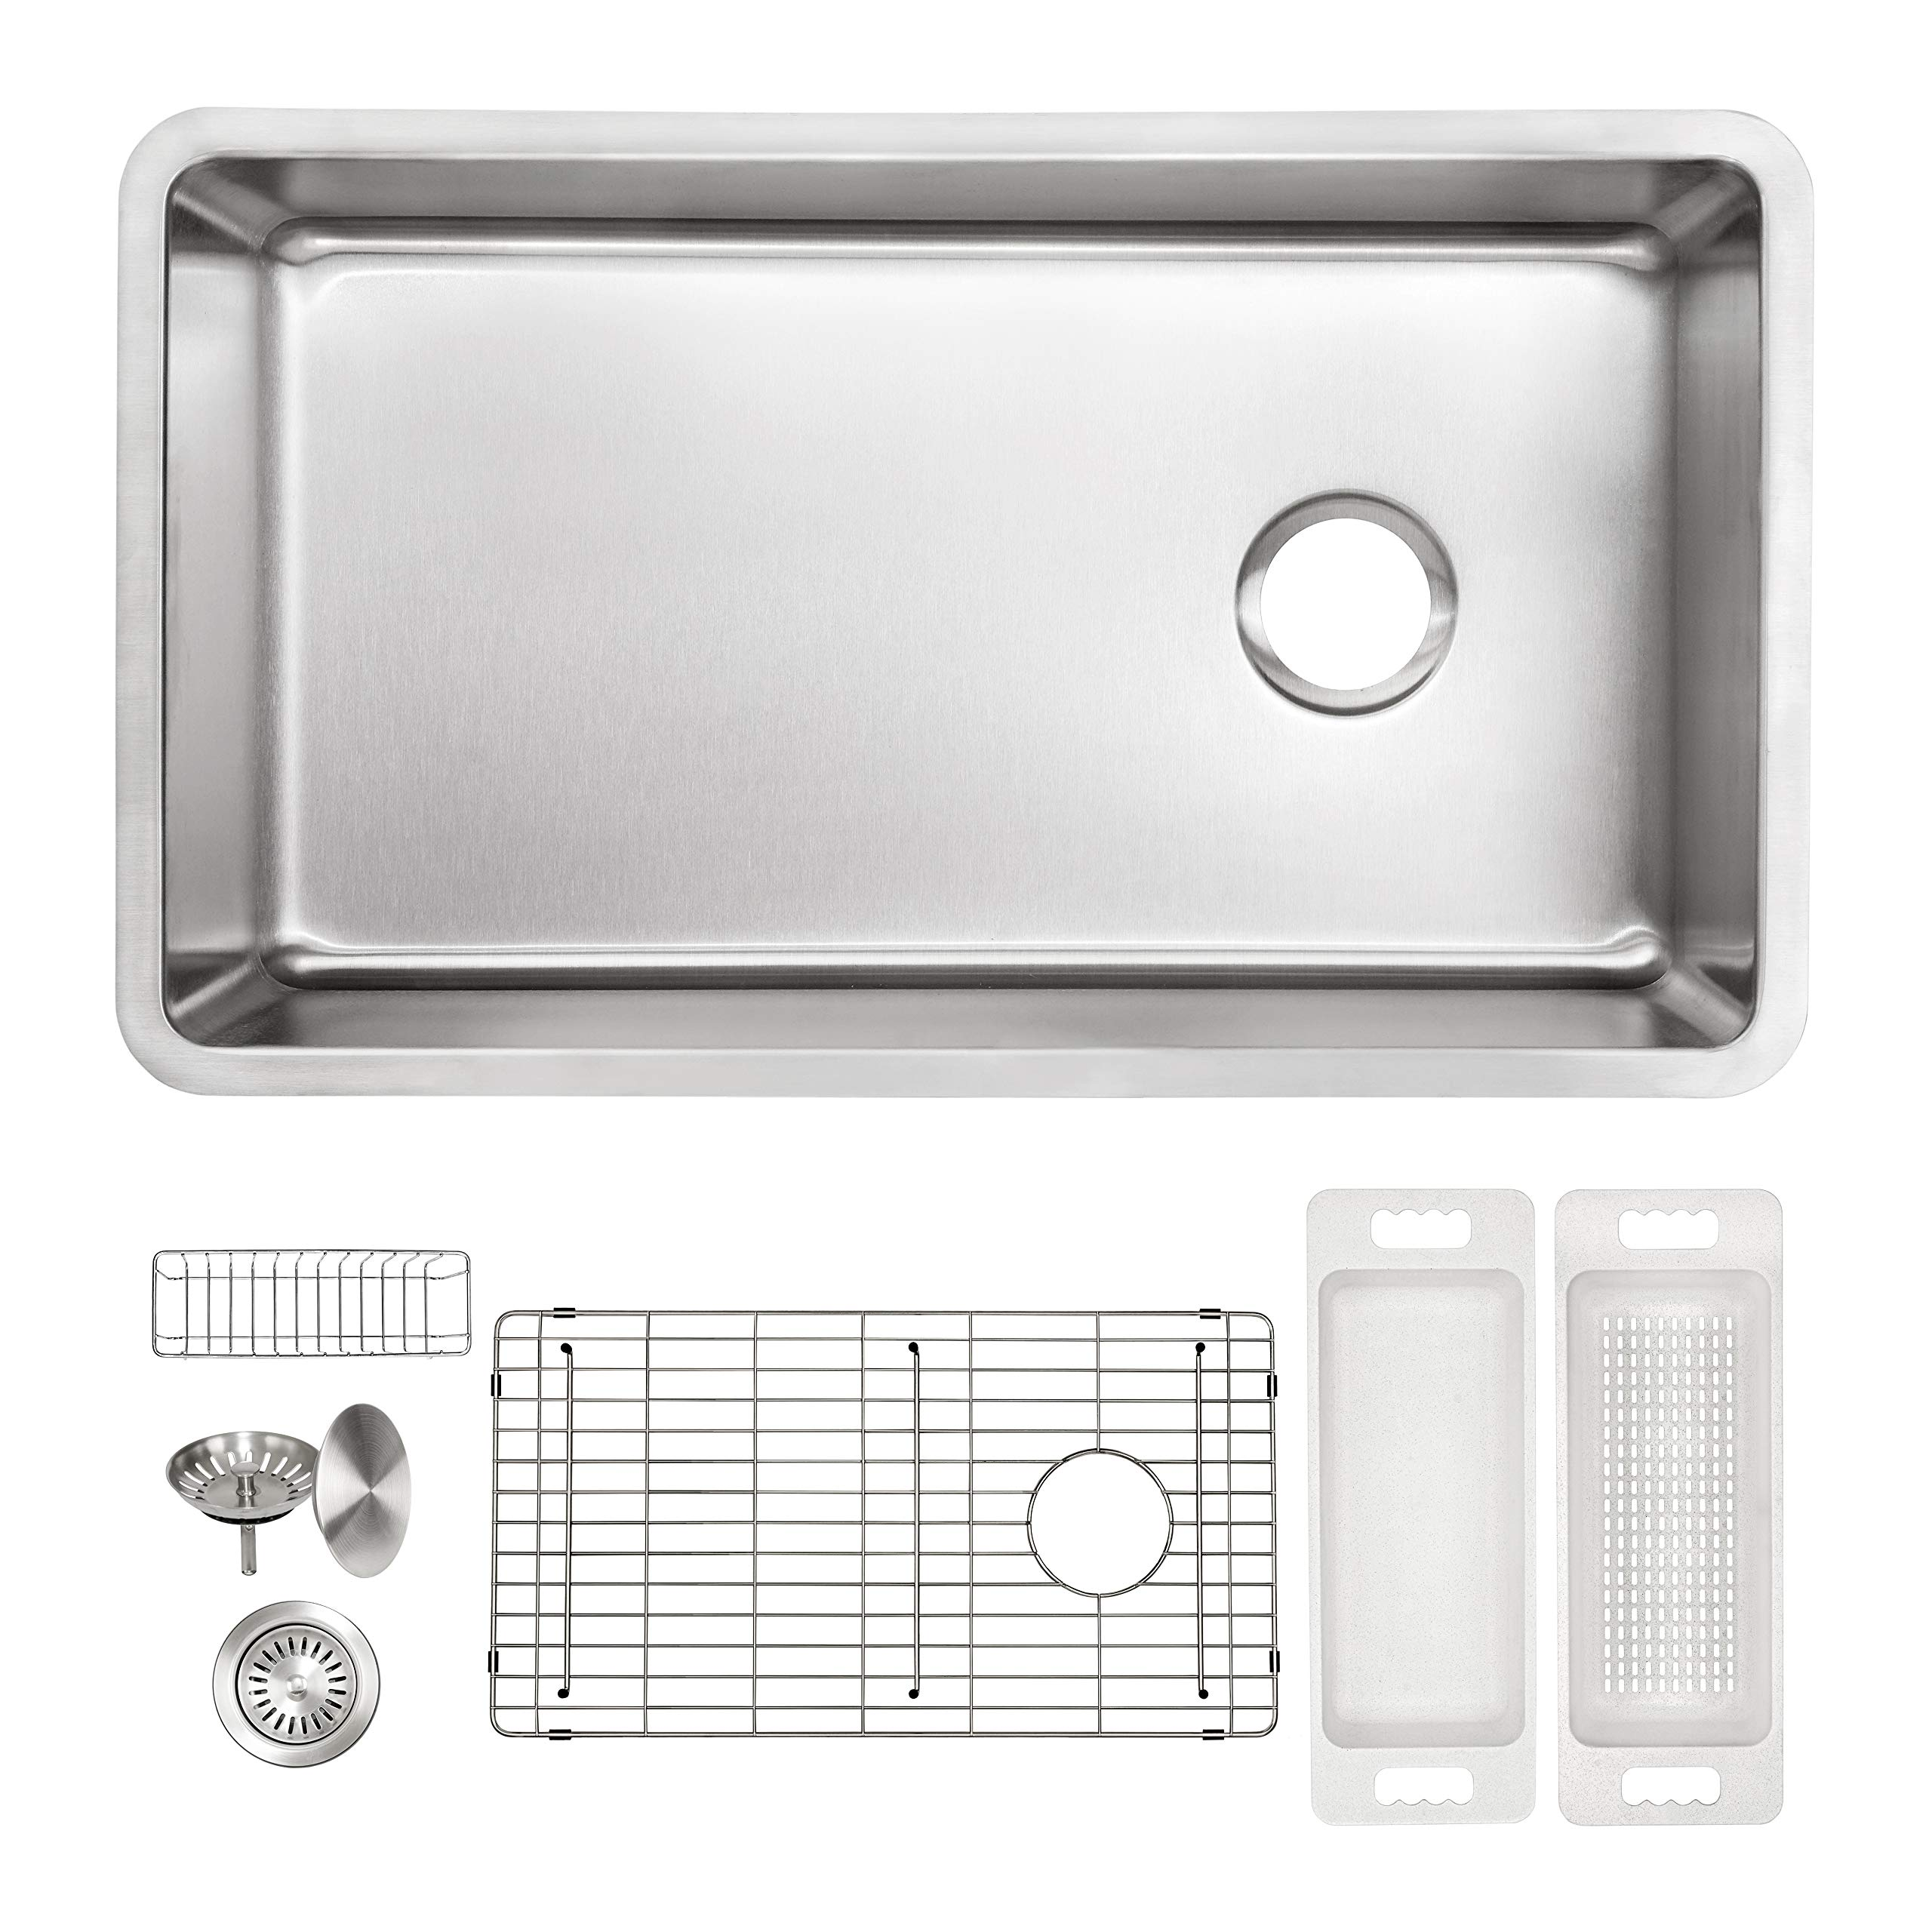 ZUHNE Verona 32 x 19 Inch Single Bowl Under Mount Reversible Offset Drain 16 Gauge Stainless Steel Kitchen Sink W. Grate Protector, Caddy, Colander Set, Drain Strainer and Mounting Clips, 36'' Cabinet